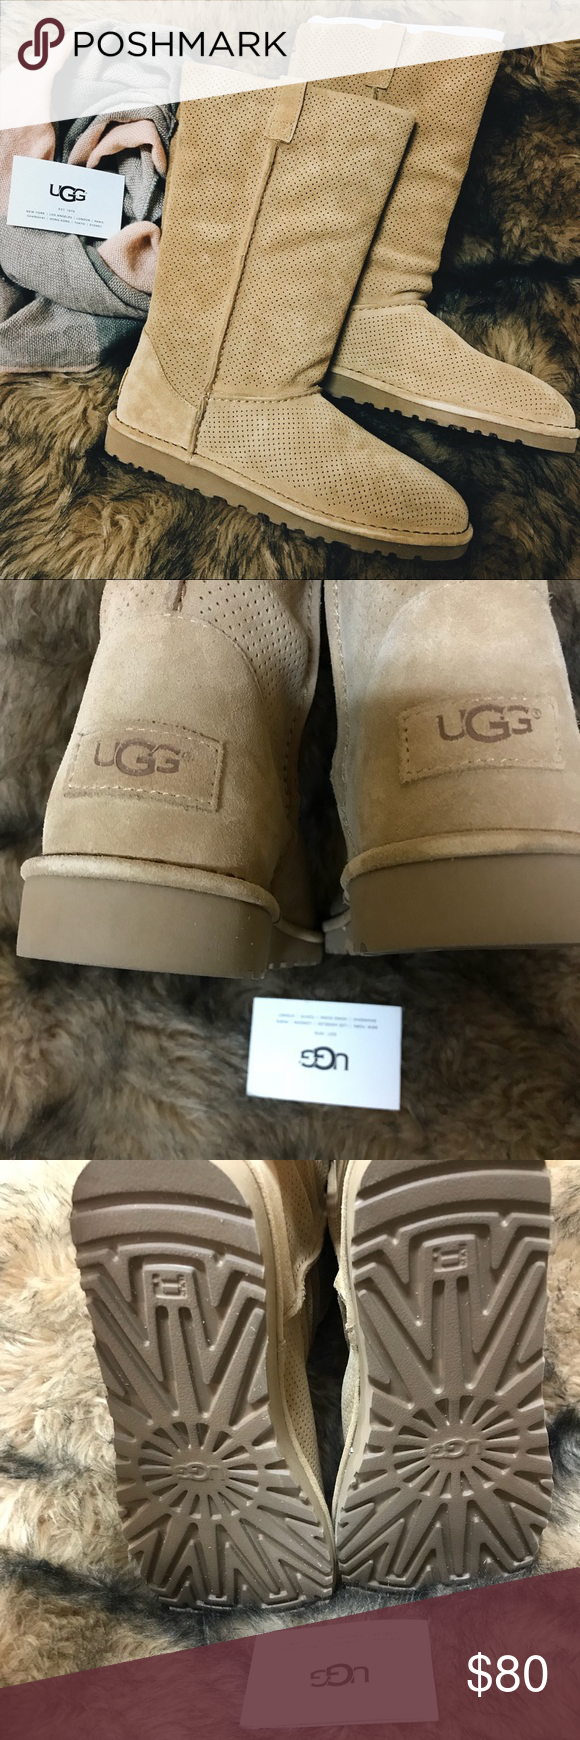 6cb3b124ffa UGG Classic Unlined Tall Perforated Boot New with tag * Genuine ...